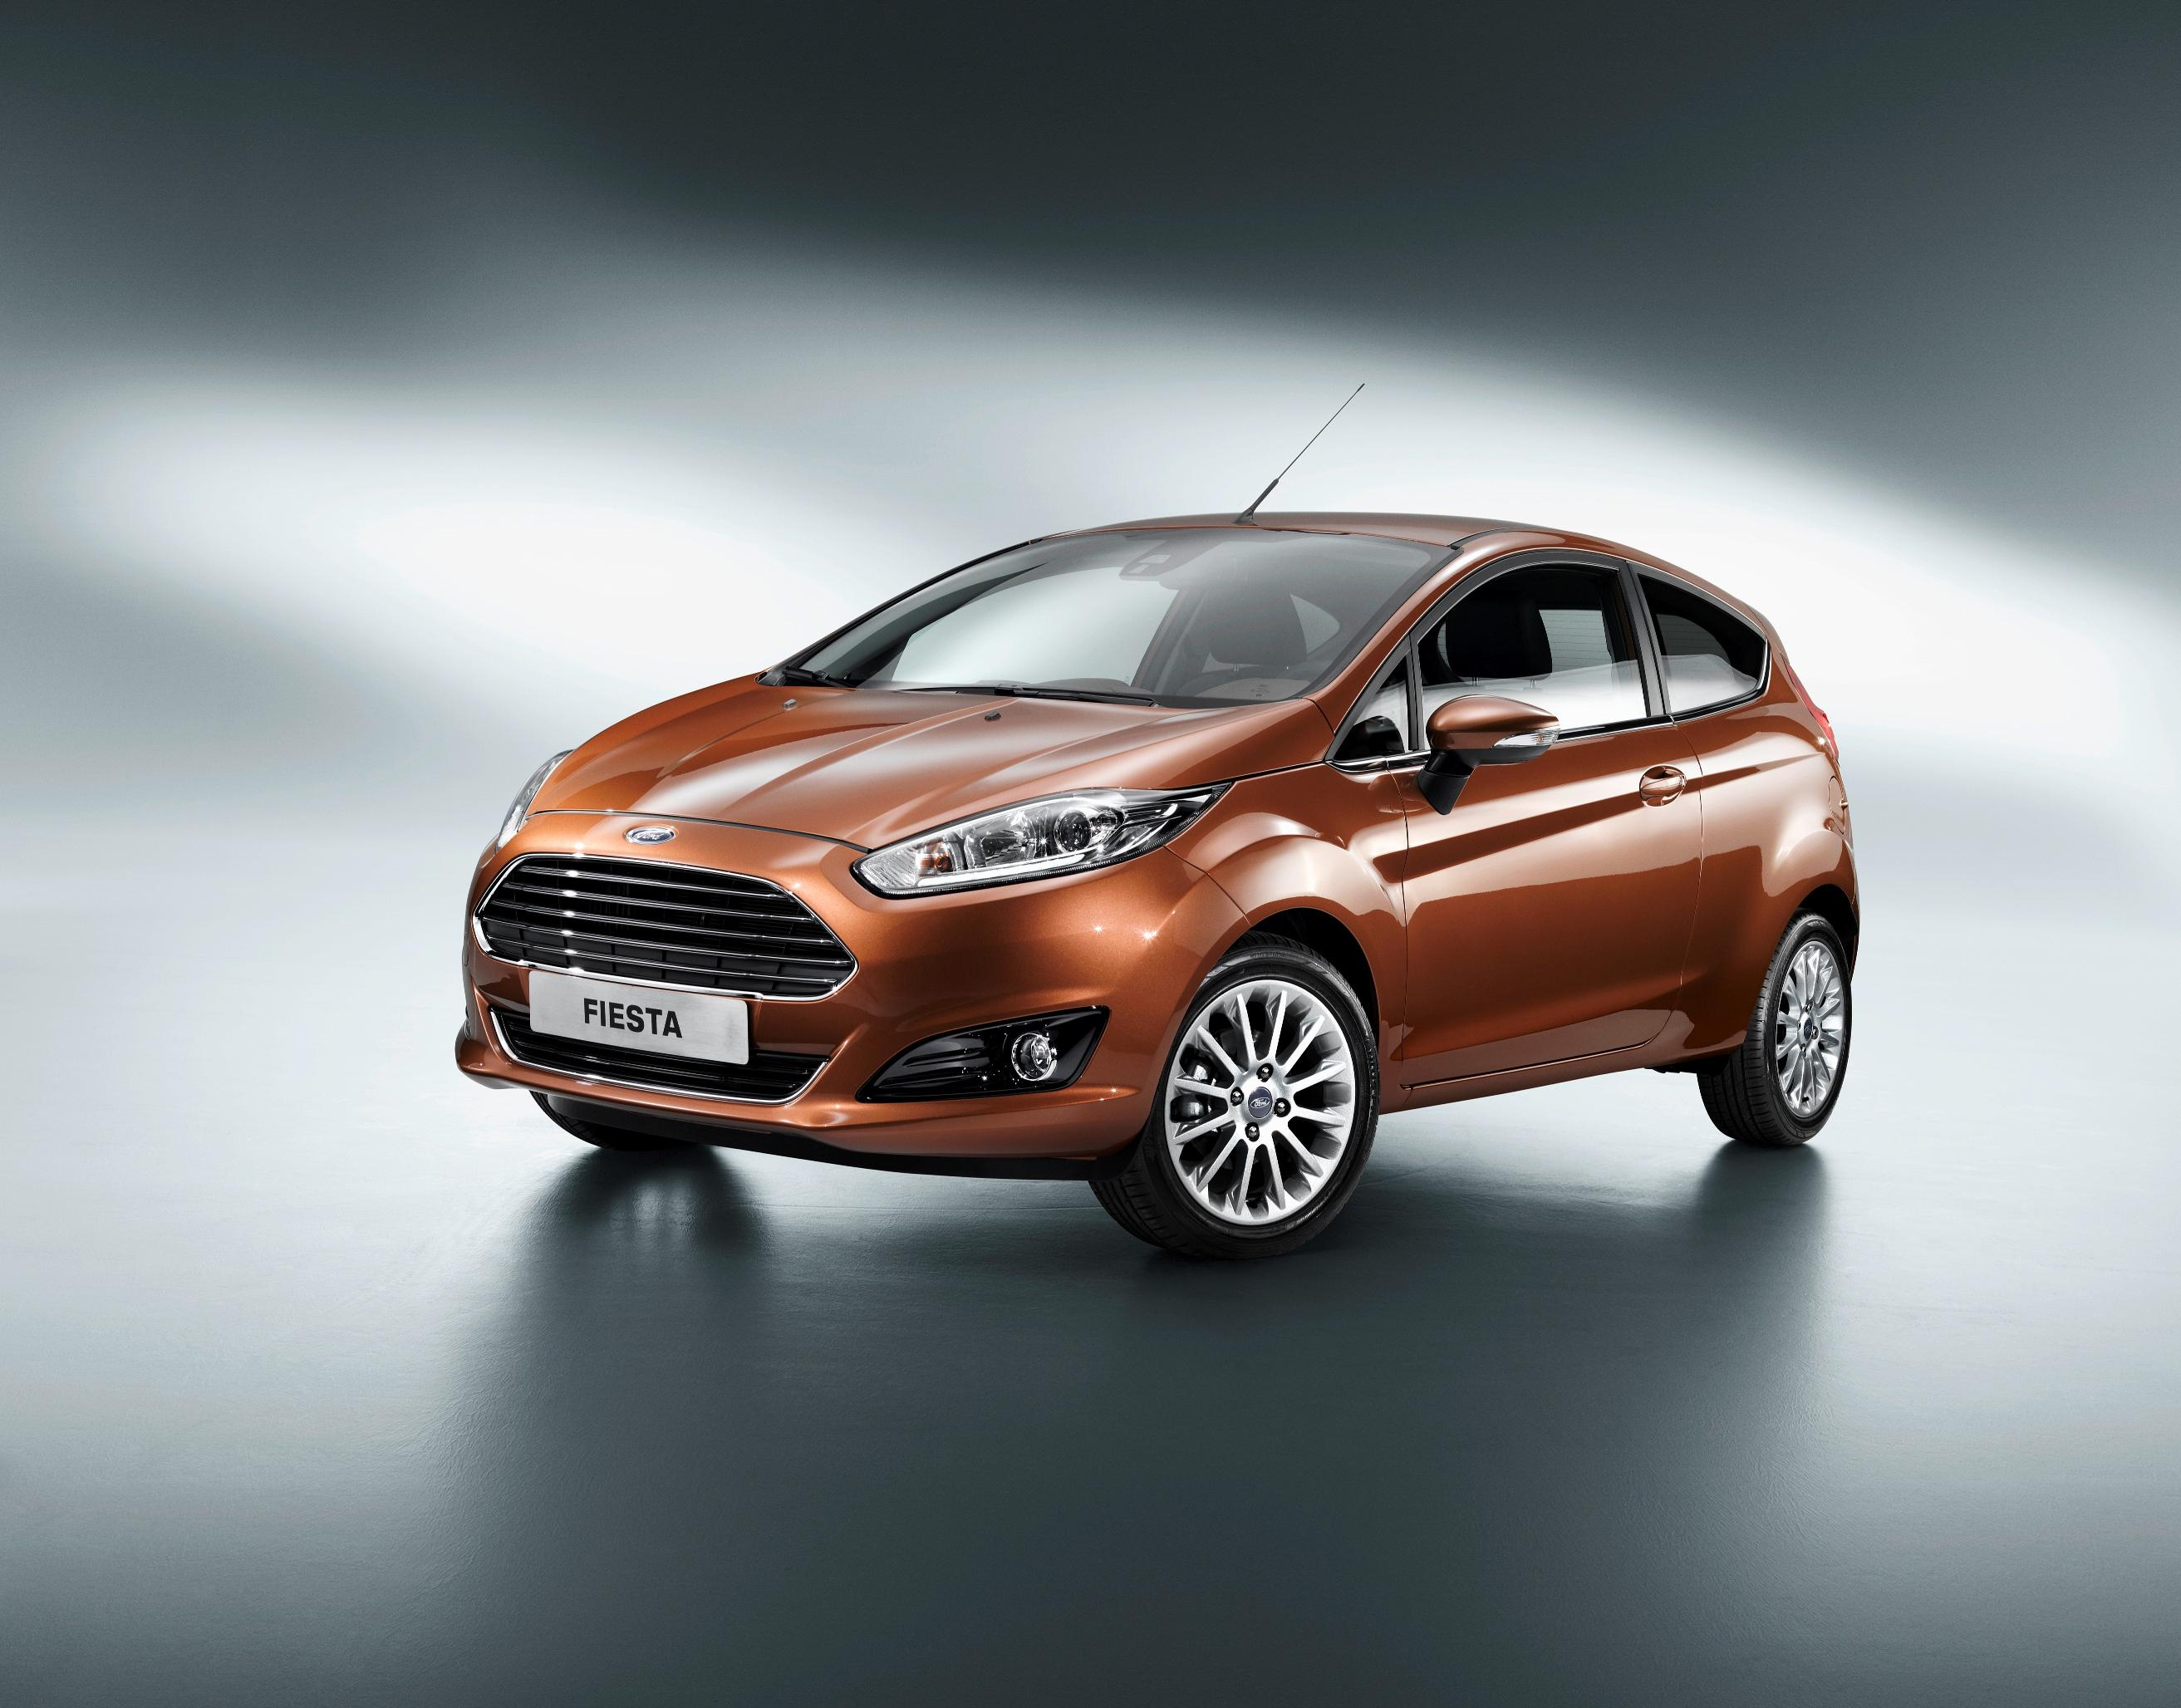 2013 Ford Fiesta Facelift